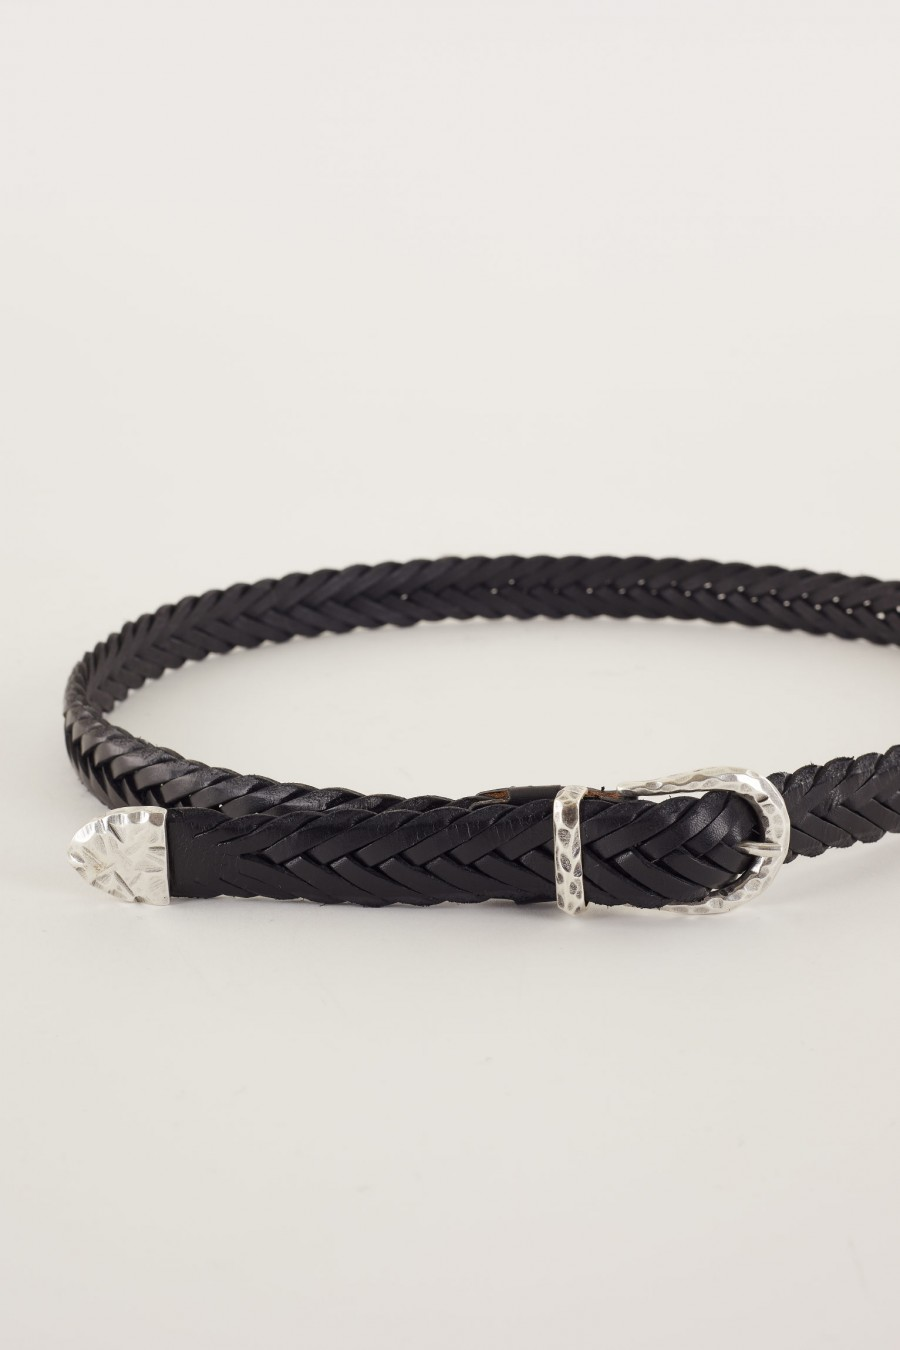 Woven leather belt with steel buckle